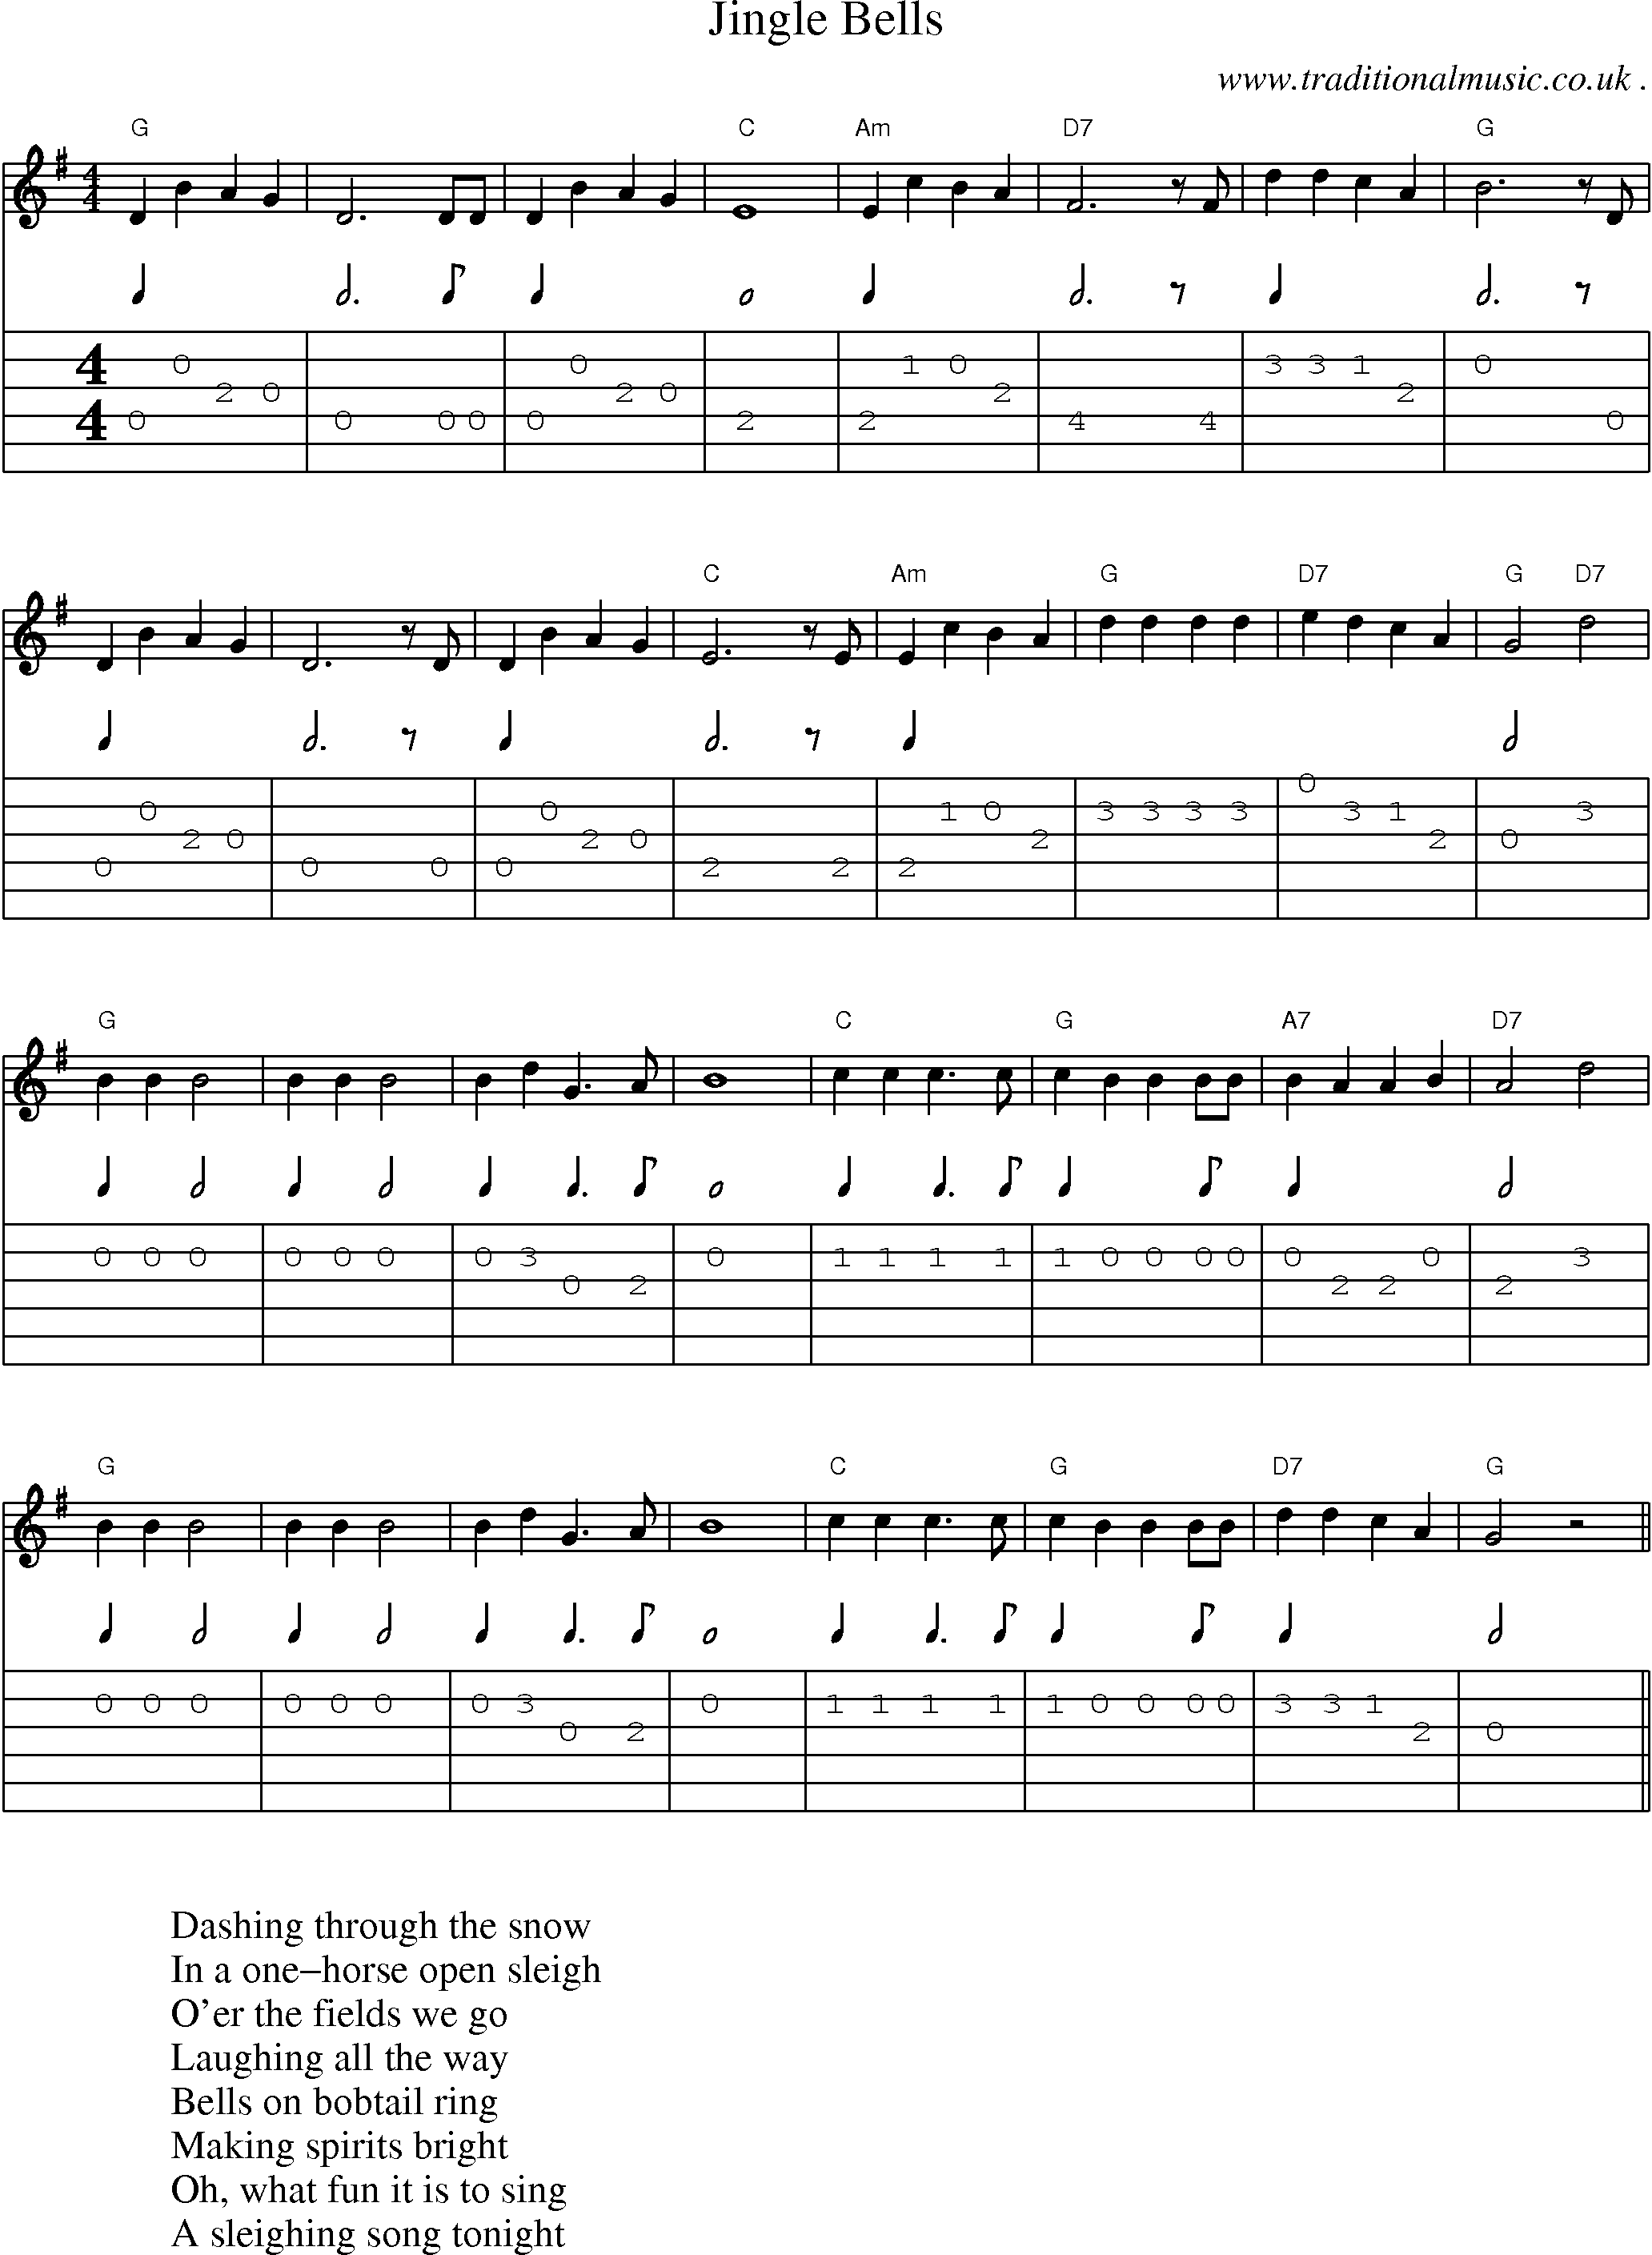 Jingle Bells Lyrics And Chords Guitar images